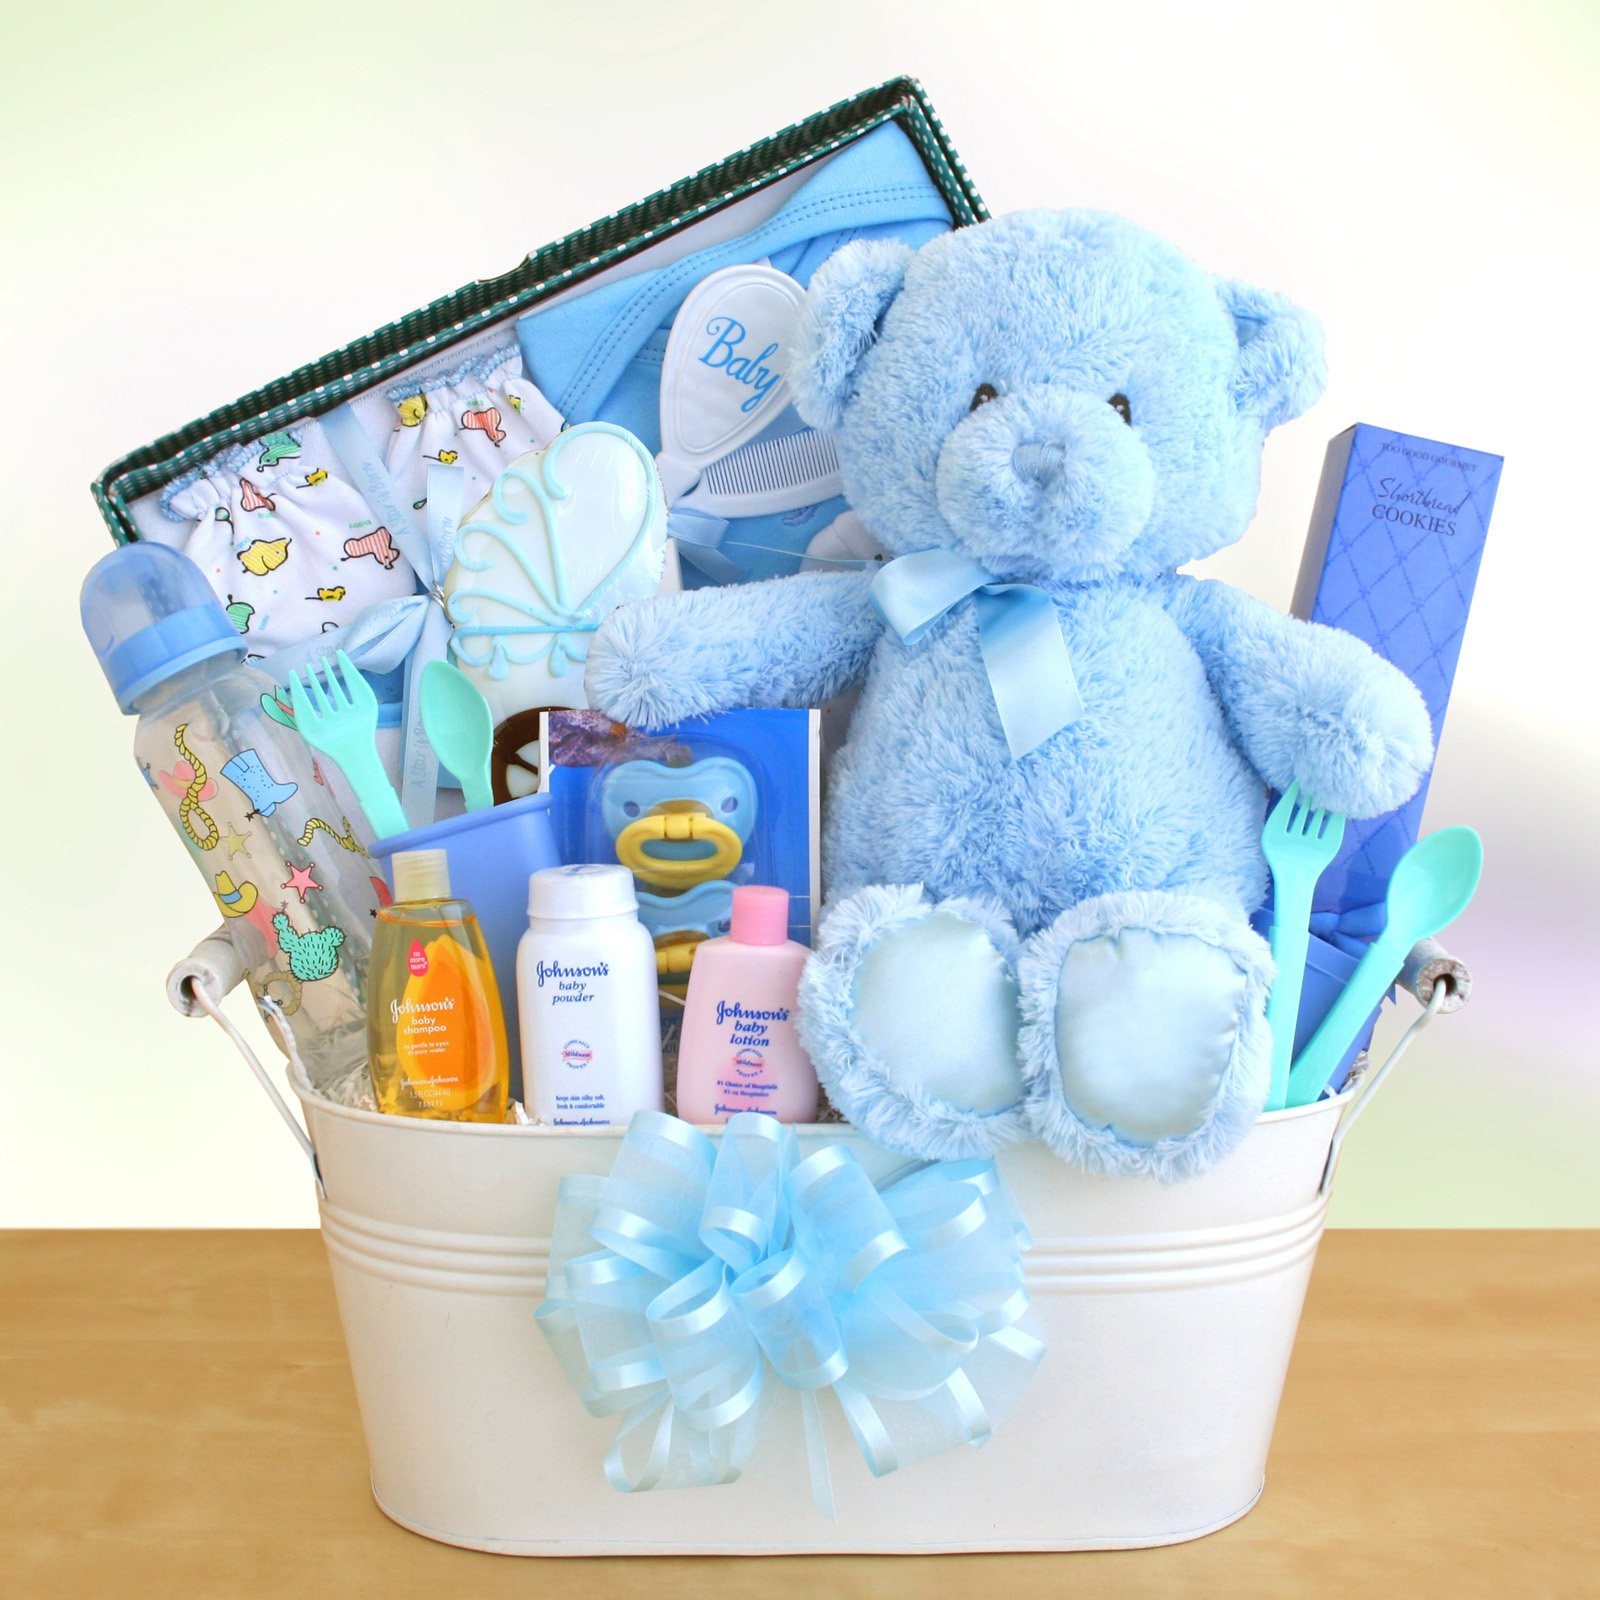 Best ideas about Ideas For A Baby Shower Gift . Save or Pin New Arrival Baby Boy Gift Basket Gift Baskets by Now.